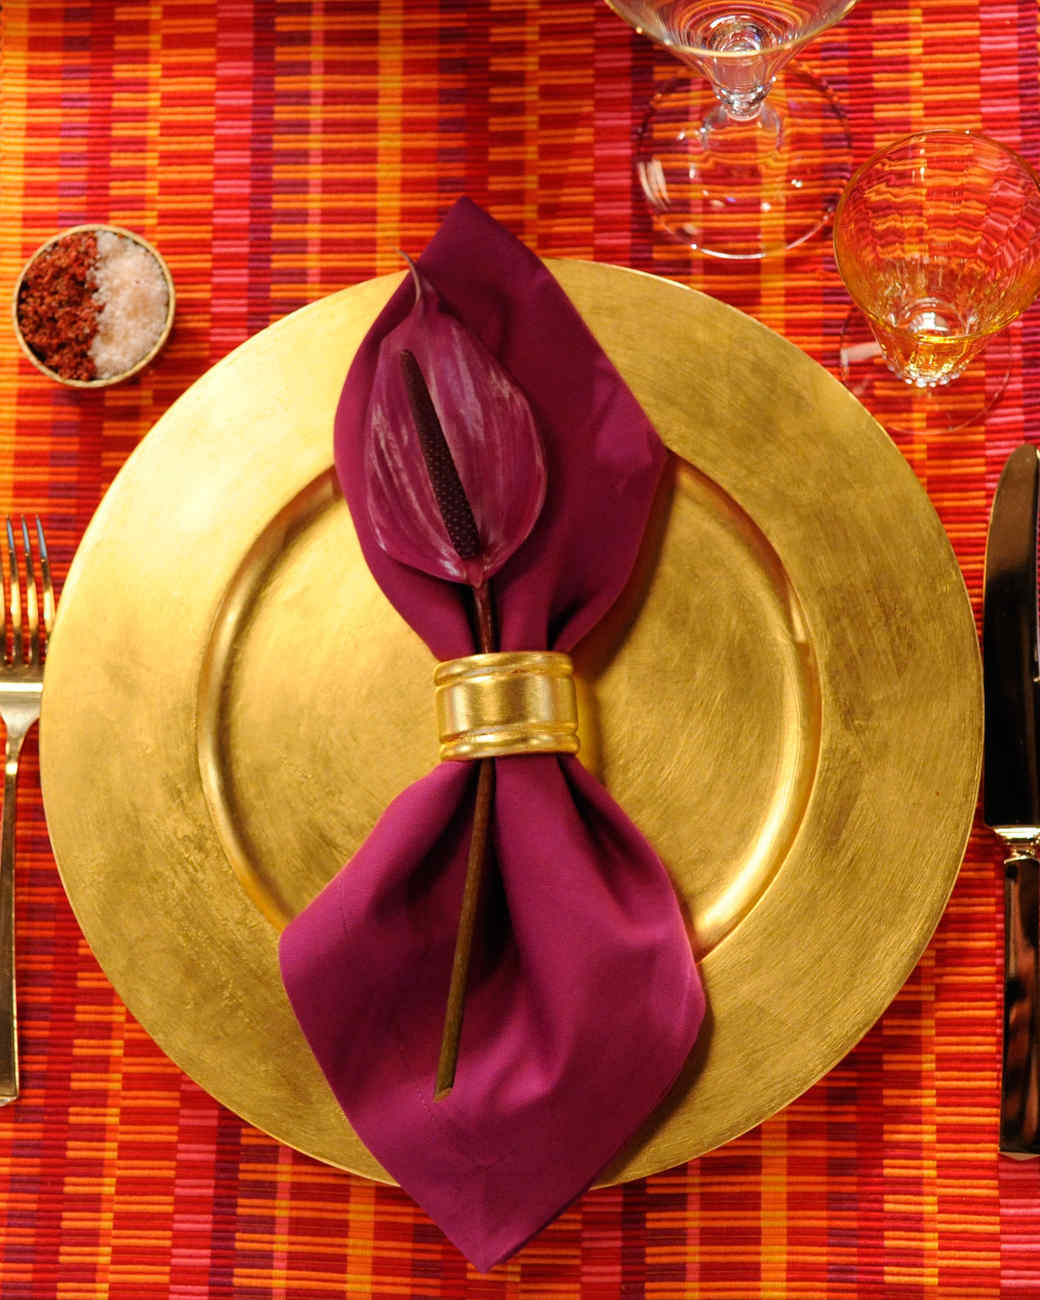 charger-napkin-ring-mslb7078.jpg